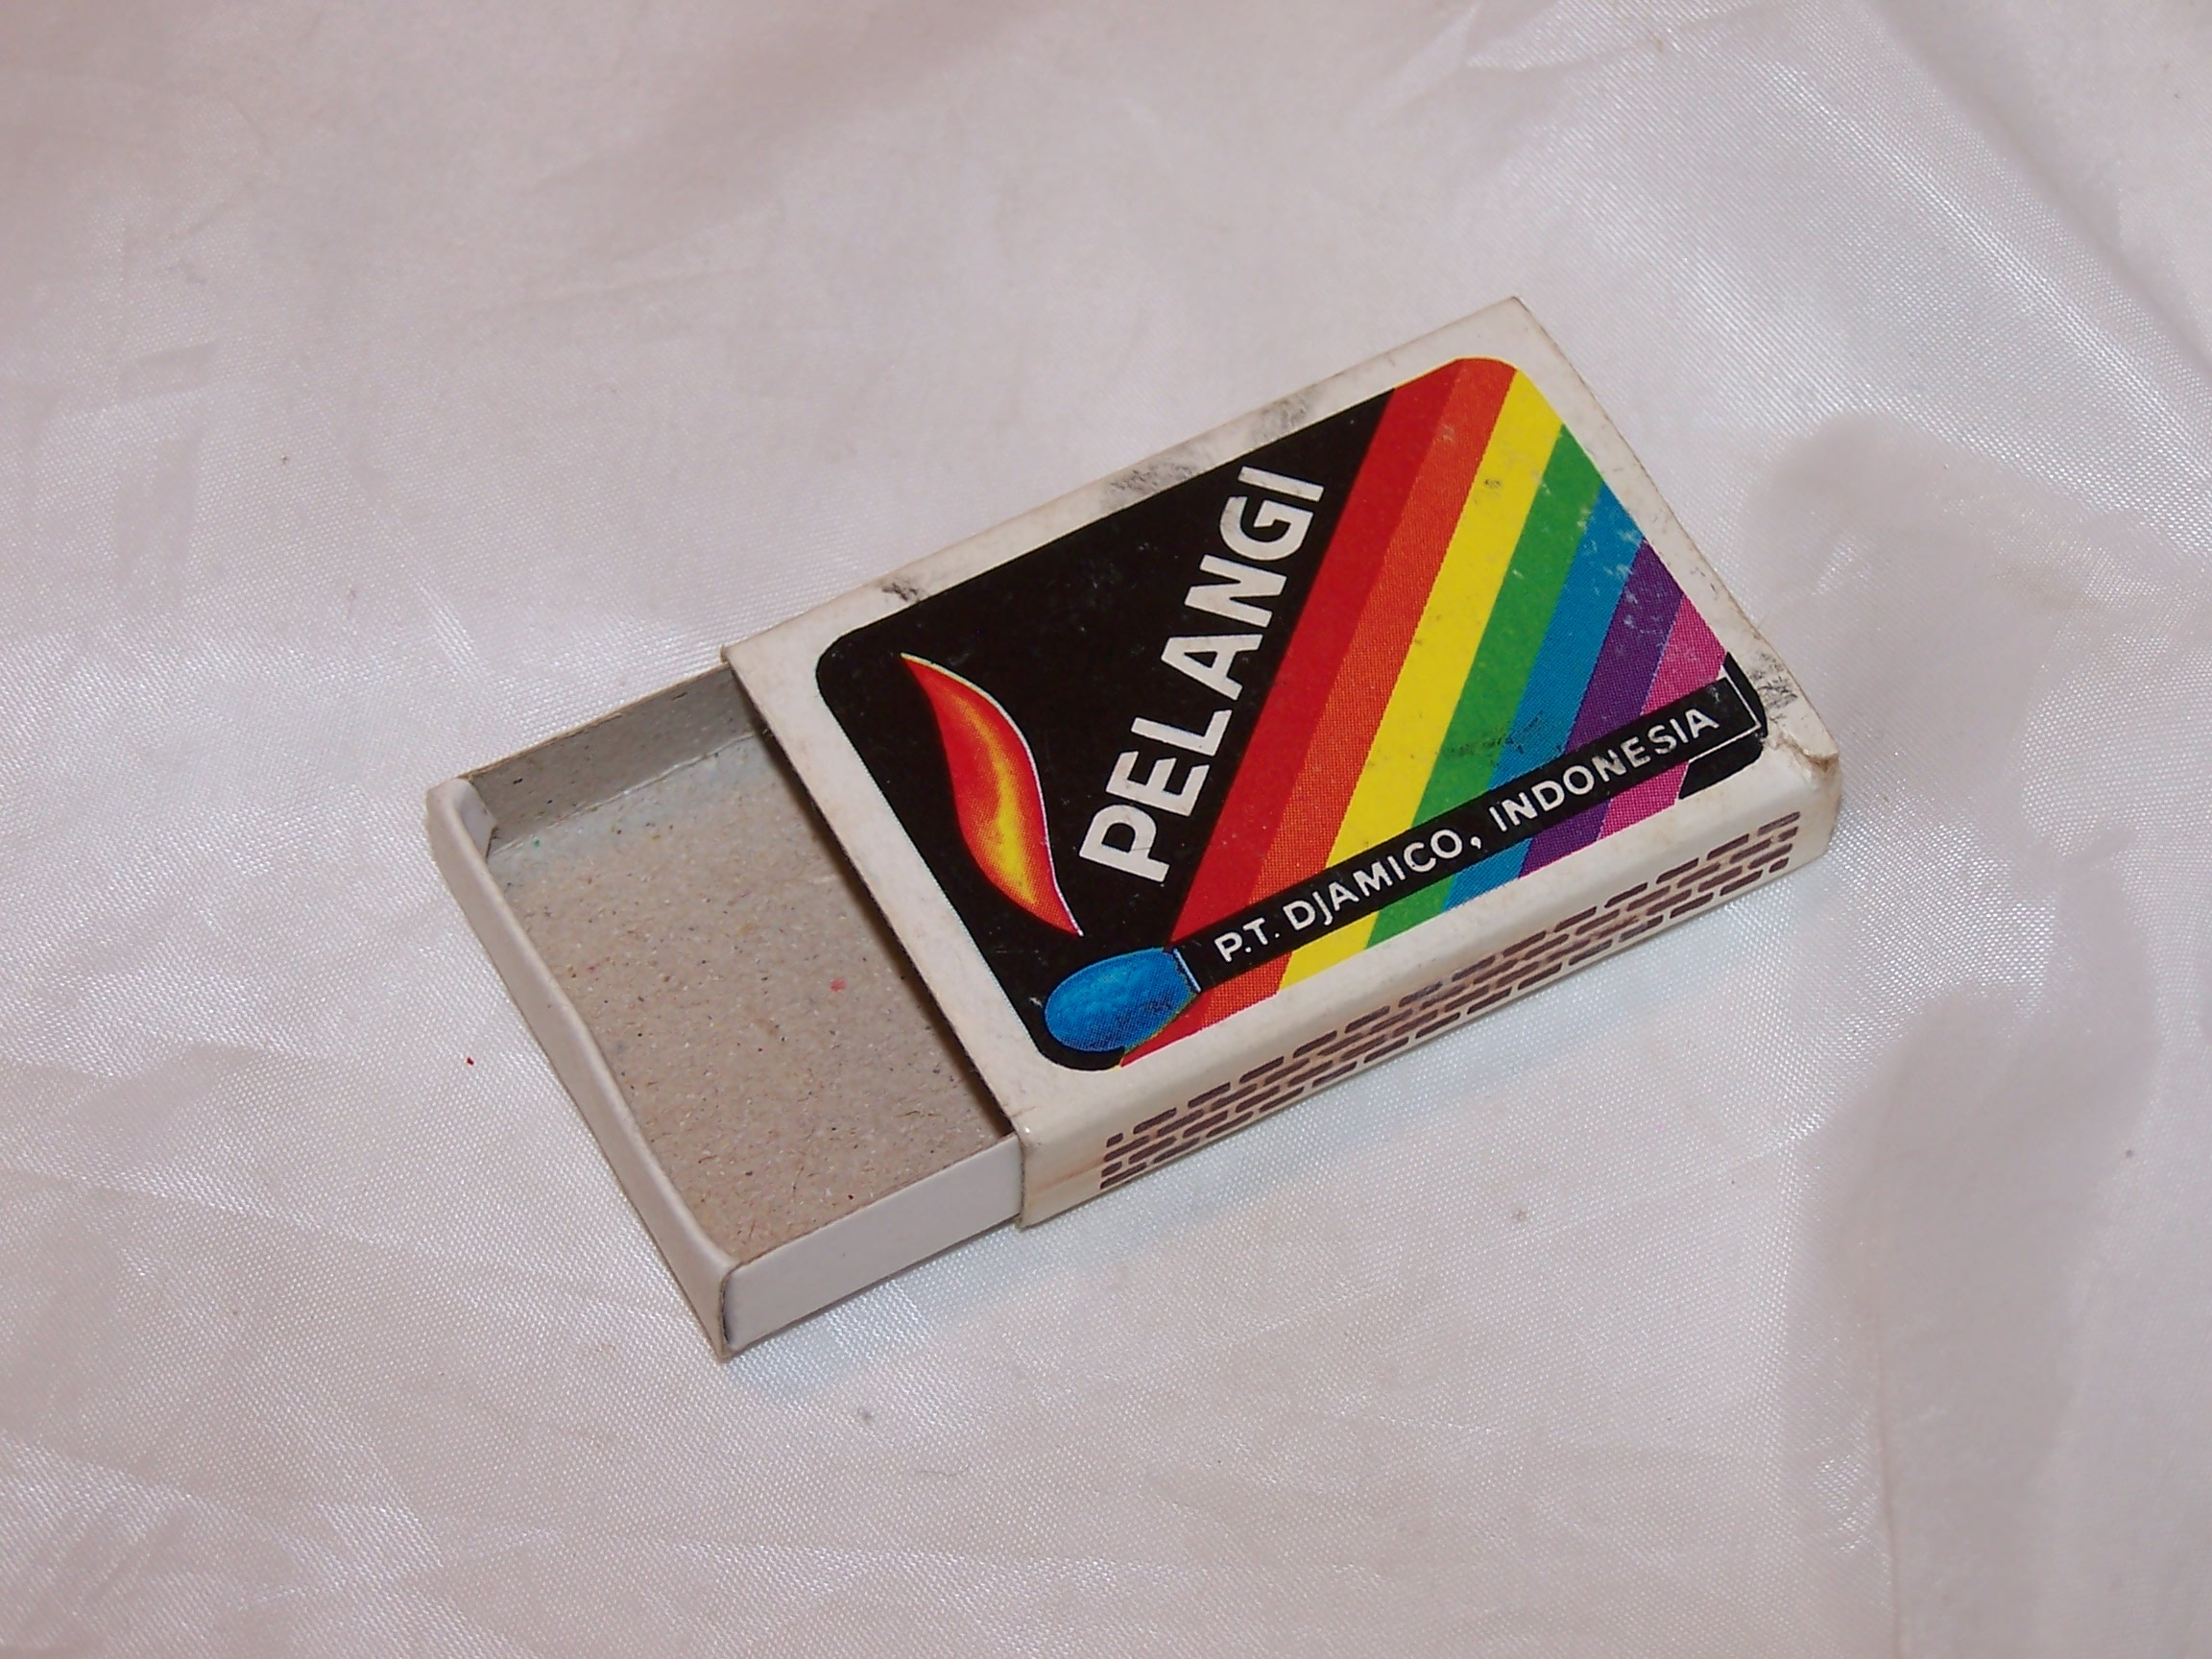 Image 4 of Rolling Stones Matchbox, Indonesia, Pelangi